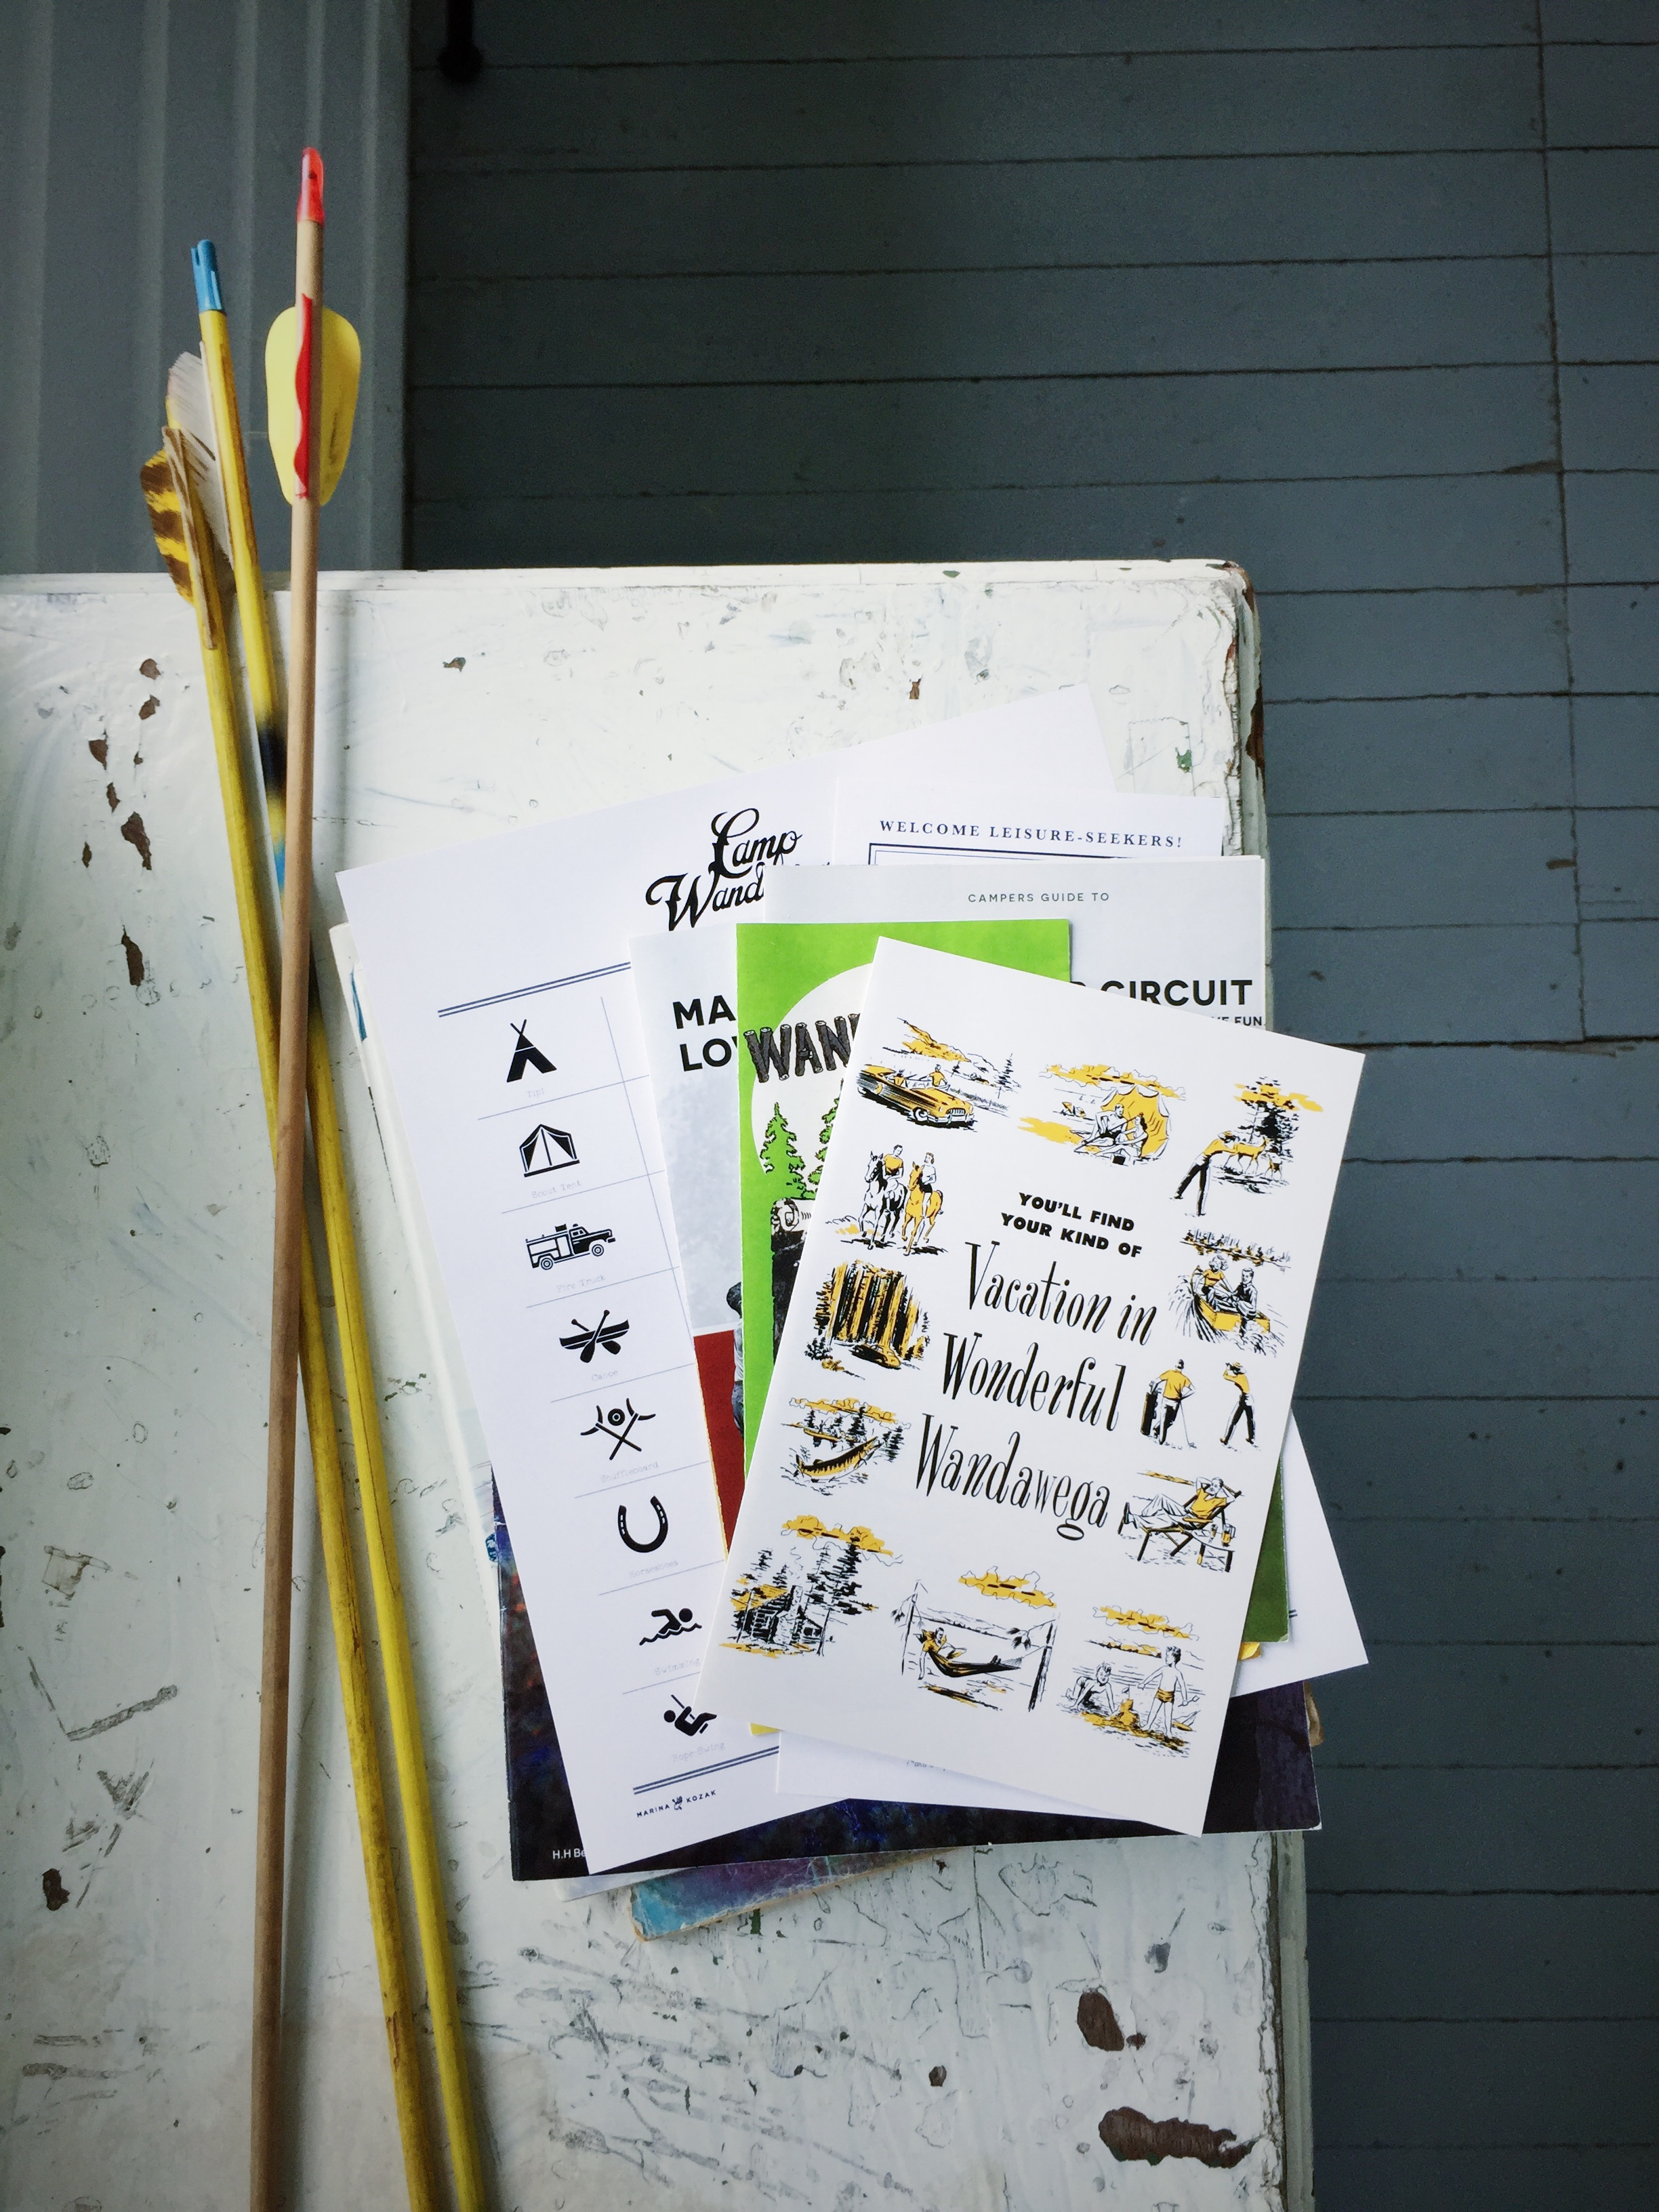 A photo of reading material at Camp Wandawega in Elkhorn, Wisconsin.